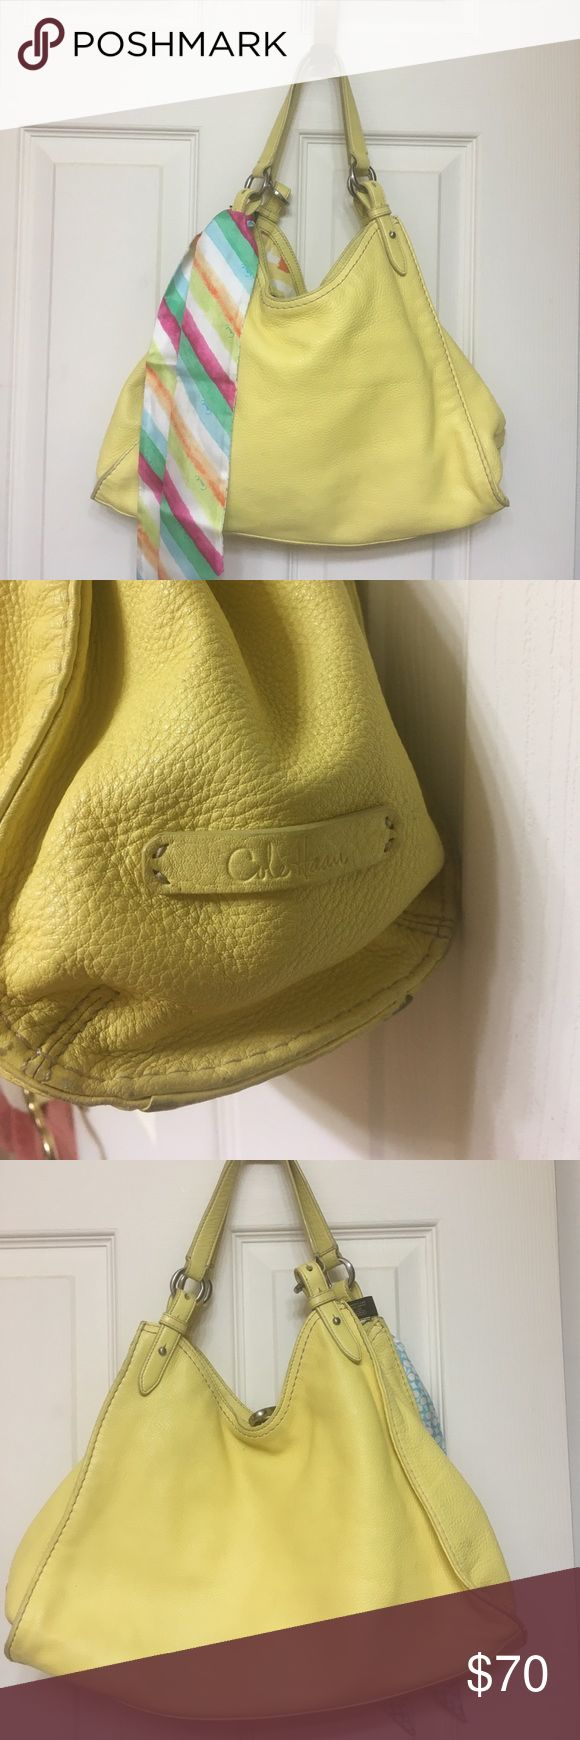 🌞Cole Haan. Bright yellow purse 🌞 Beautiful Cole Haan purse.  It's as bright as the sun.  This is ready to go along with you on spring break.   The scarf is coach, sold separate.  If you want new, don't buy this.    Anything that is used people rate them differently.    Bundle and save.   Always happy to add pics or answer any questions.   🎉 Cole Haan Bags Shoulder Bags